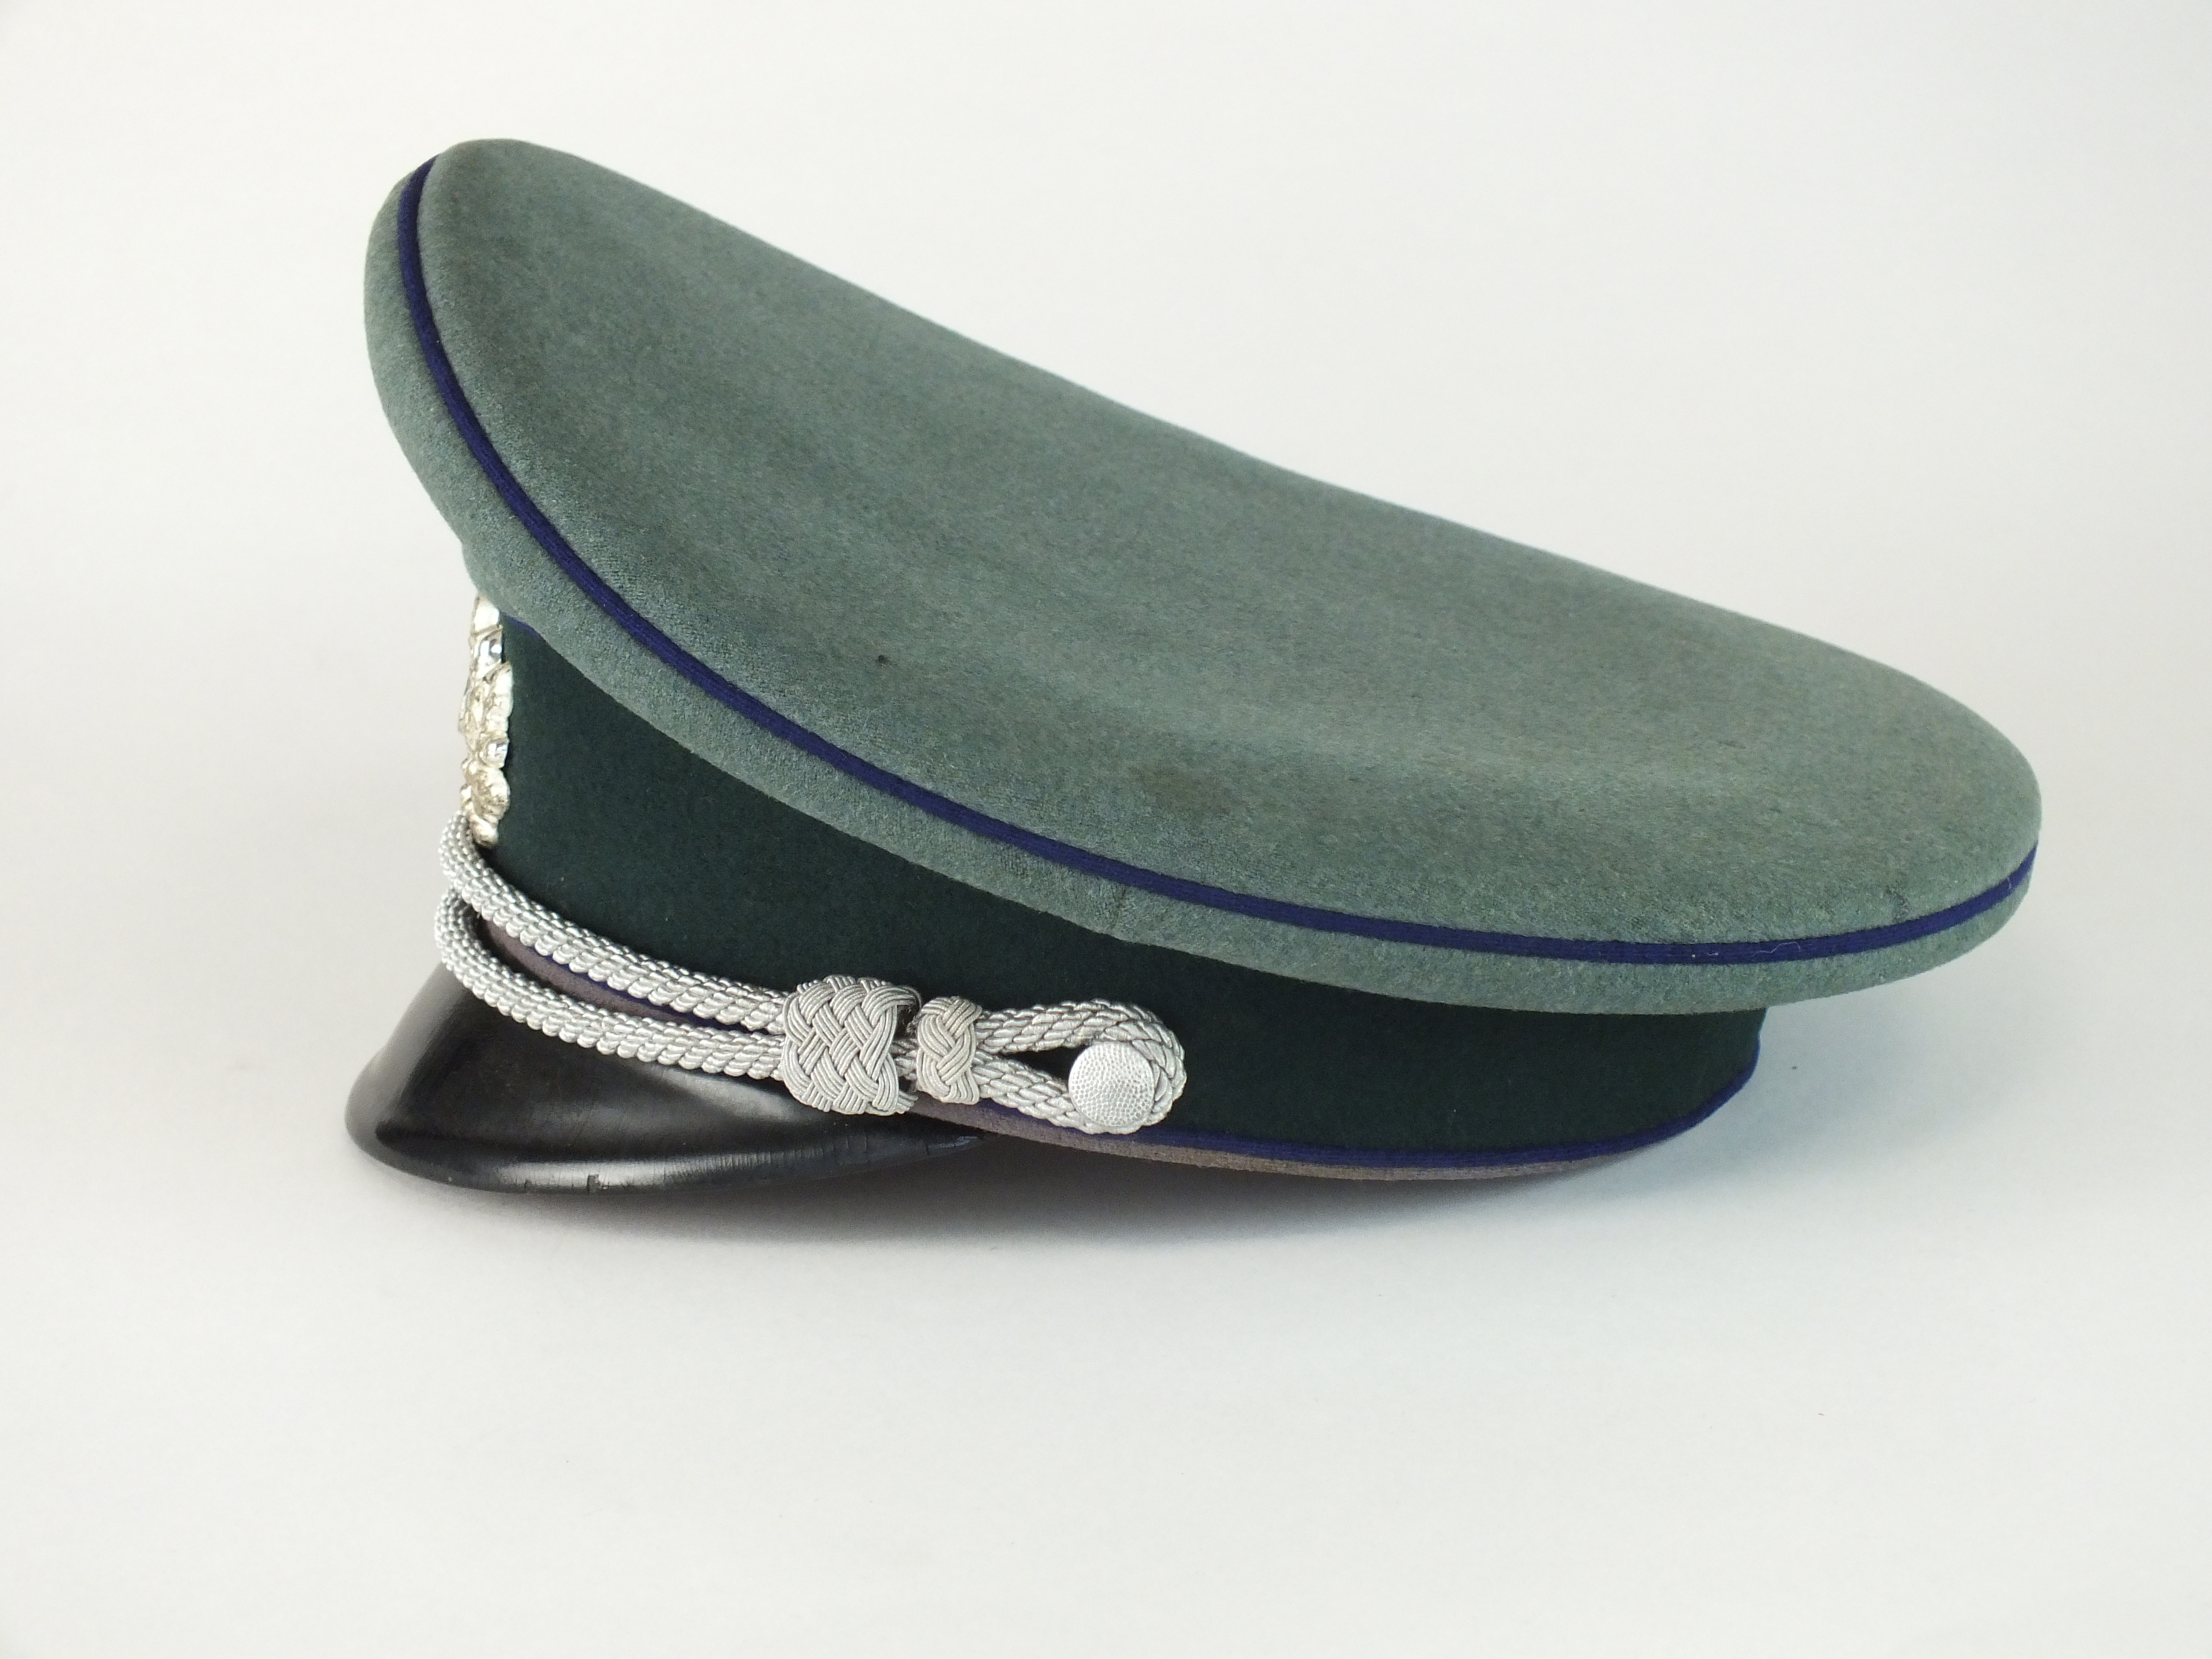 German Third Reich Army Medical Officer's visor - Image 3 of 5